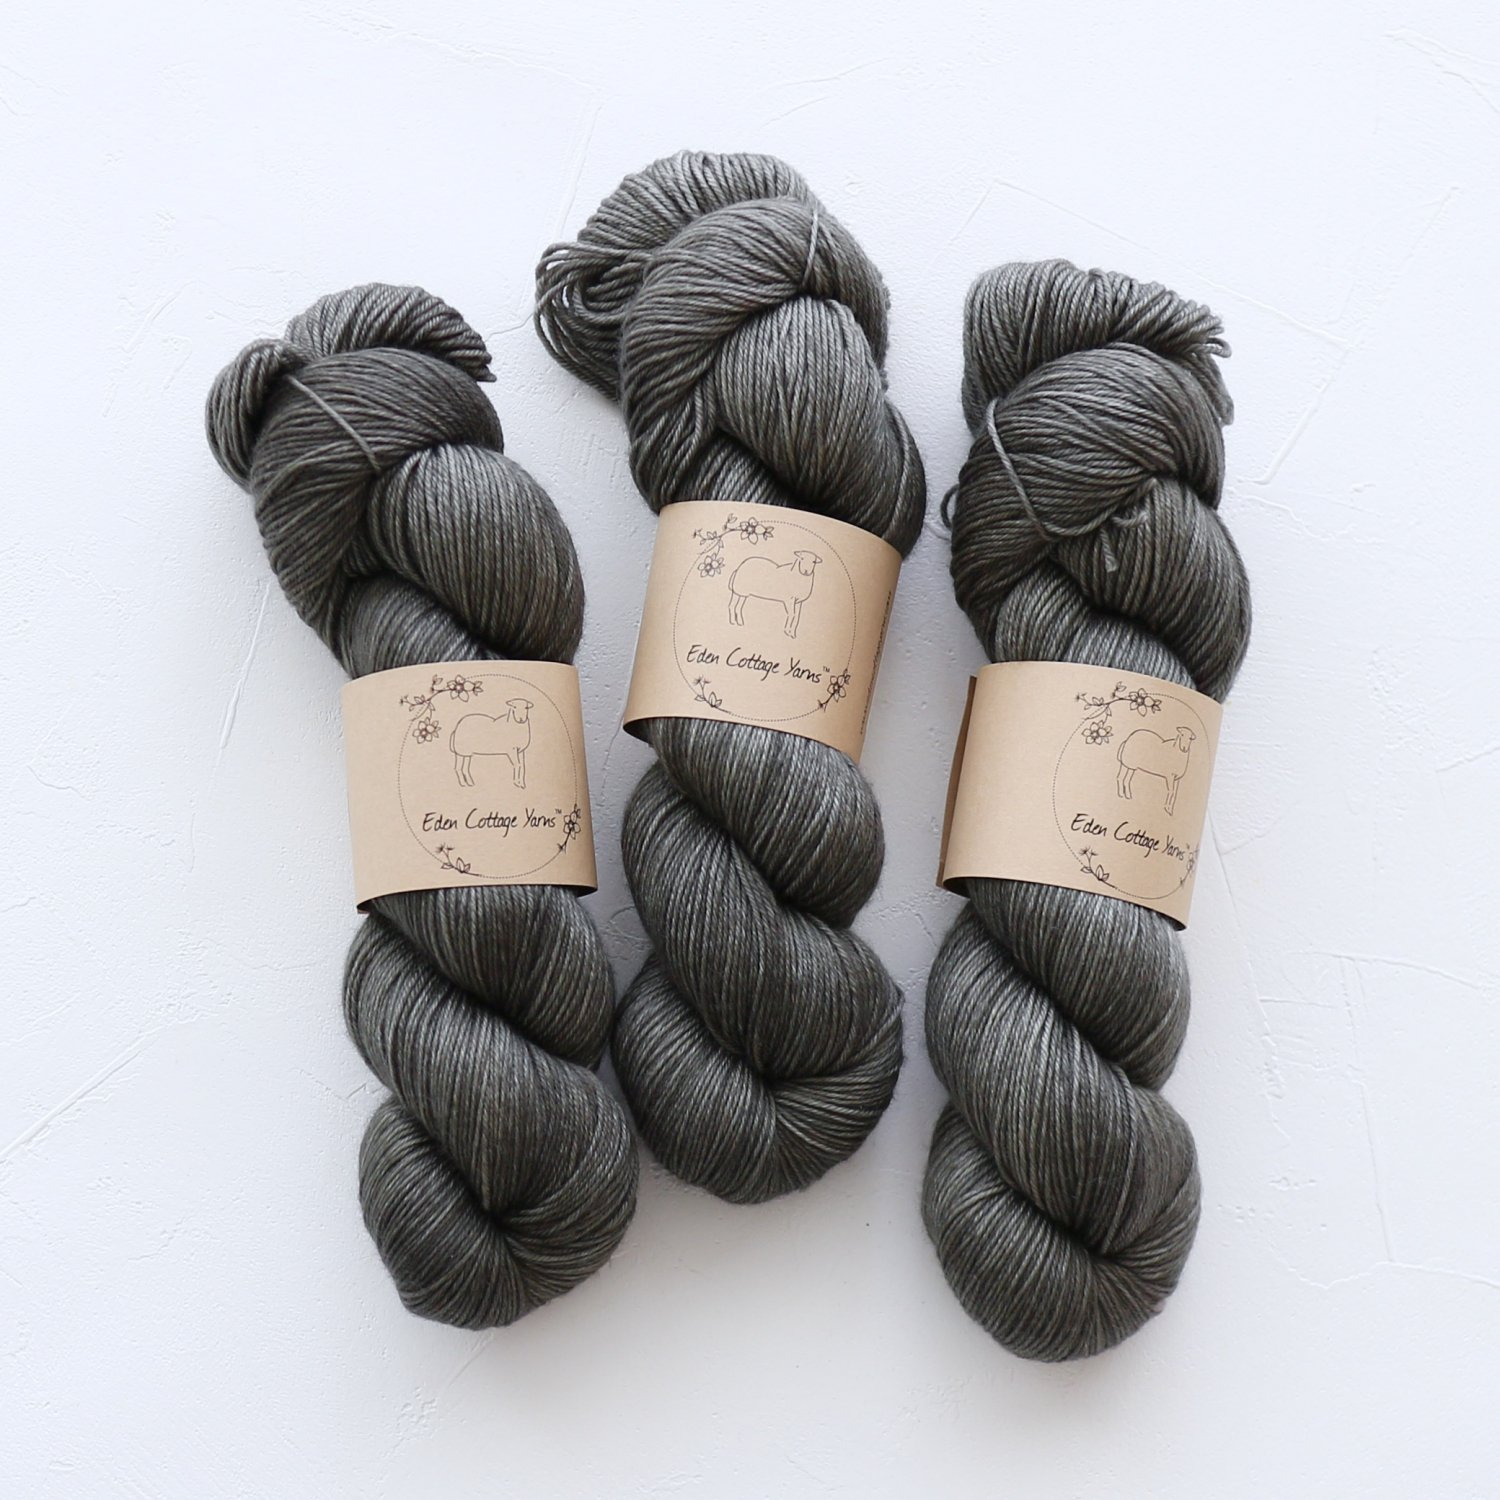 【Eden Cottage Yarns】<br>Pendle 4ply<br>Charcoal